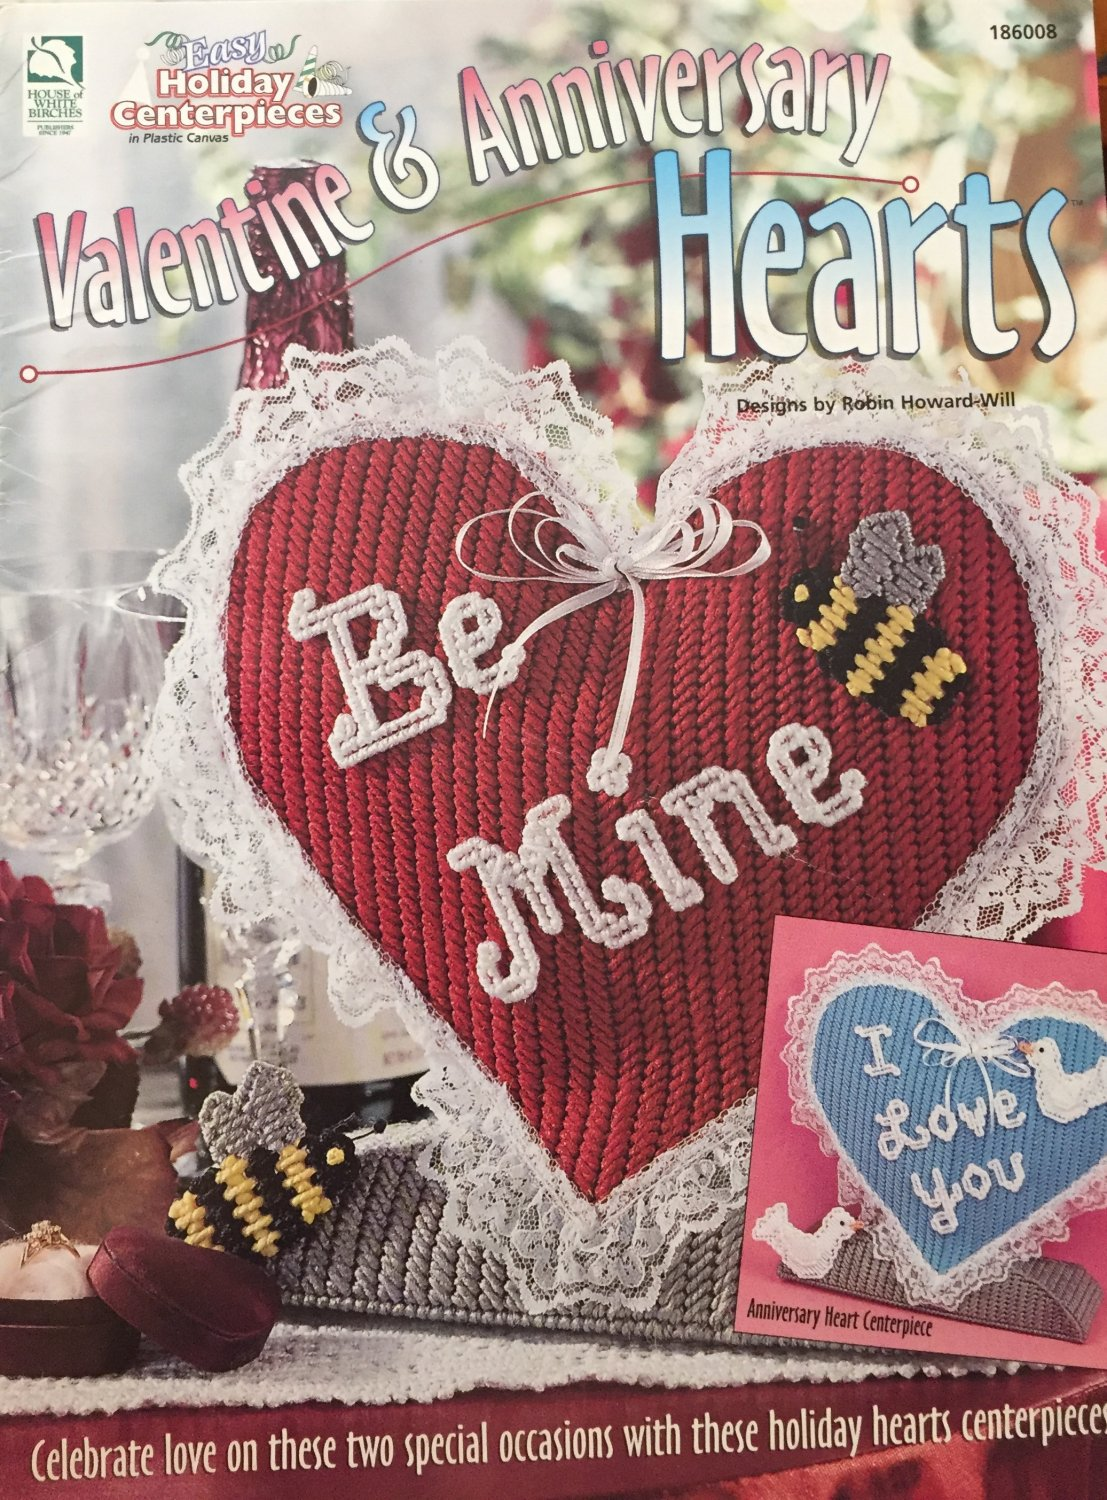 Valentines Anniversary card LOVE multilingual languages heart